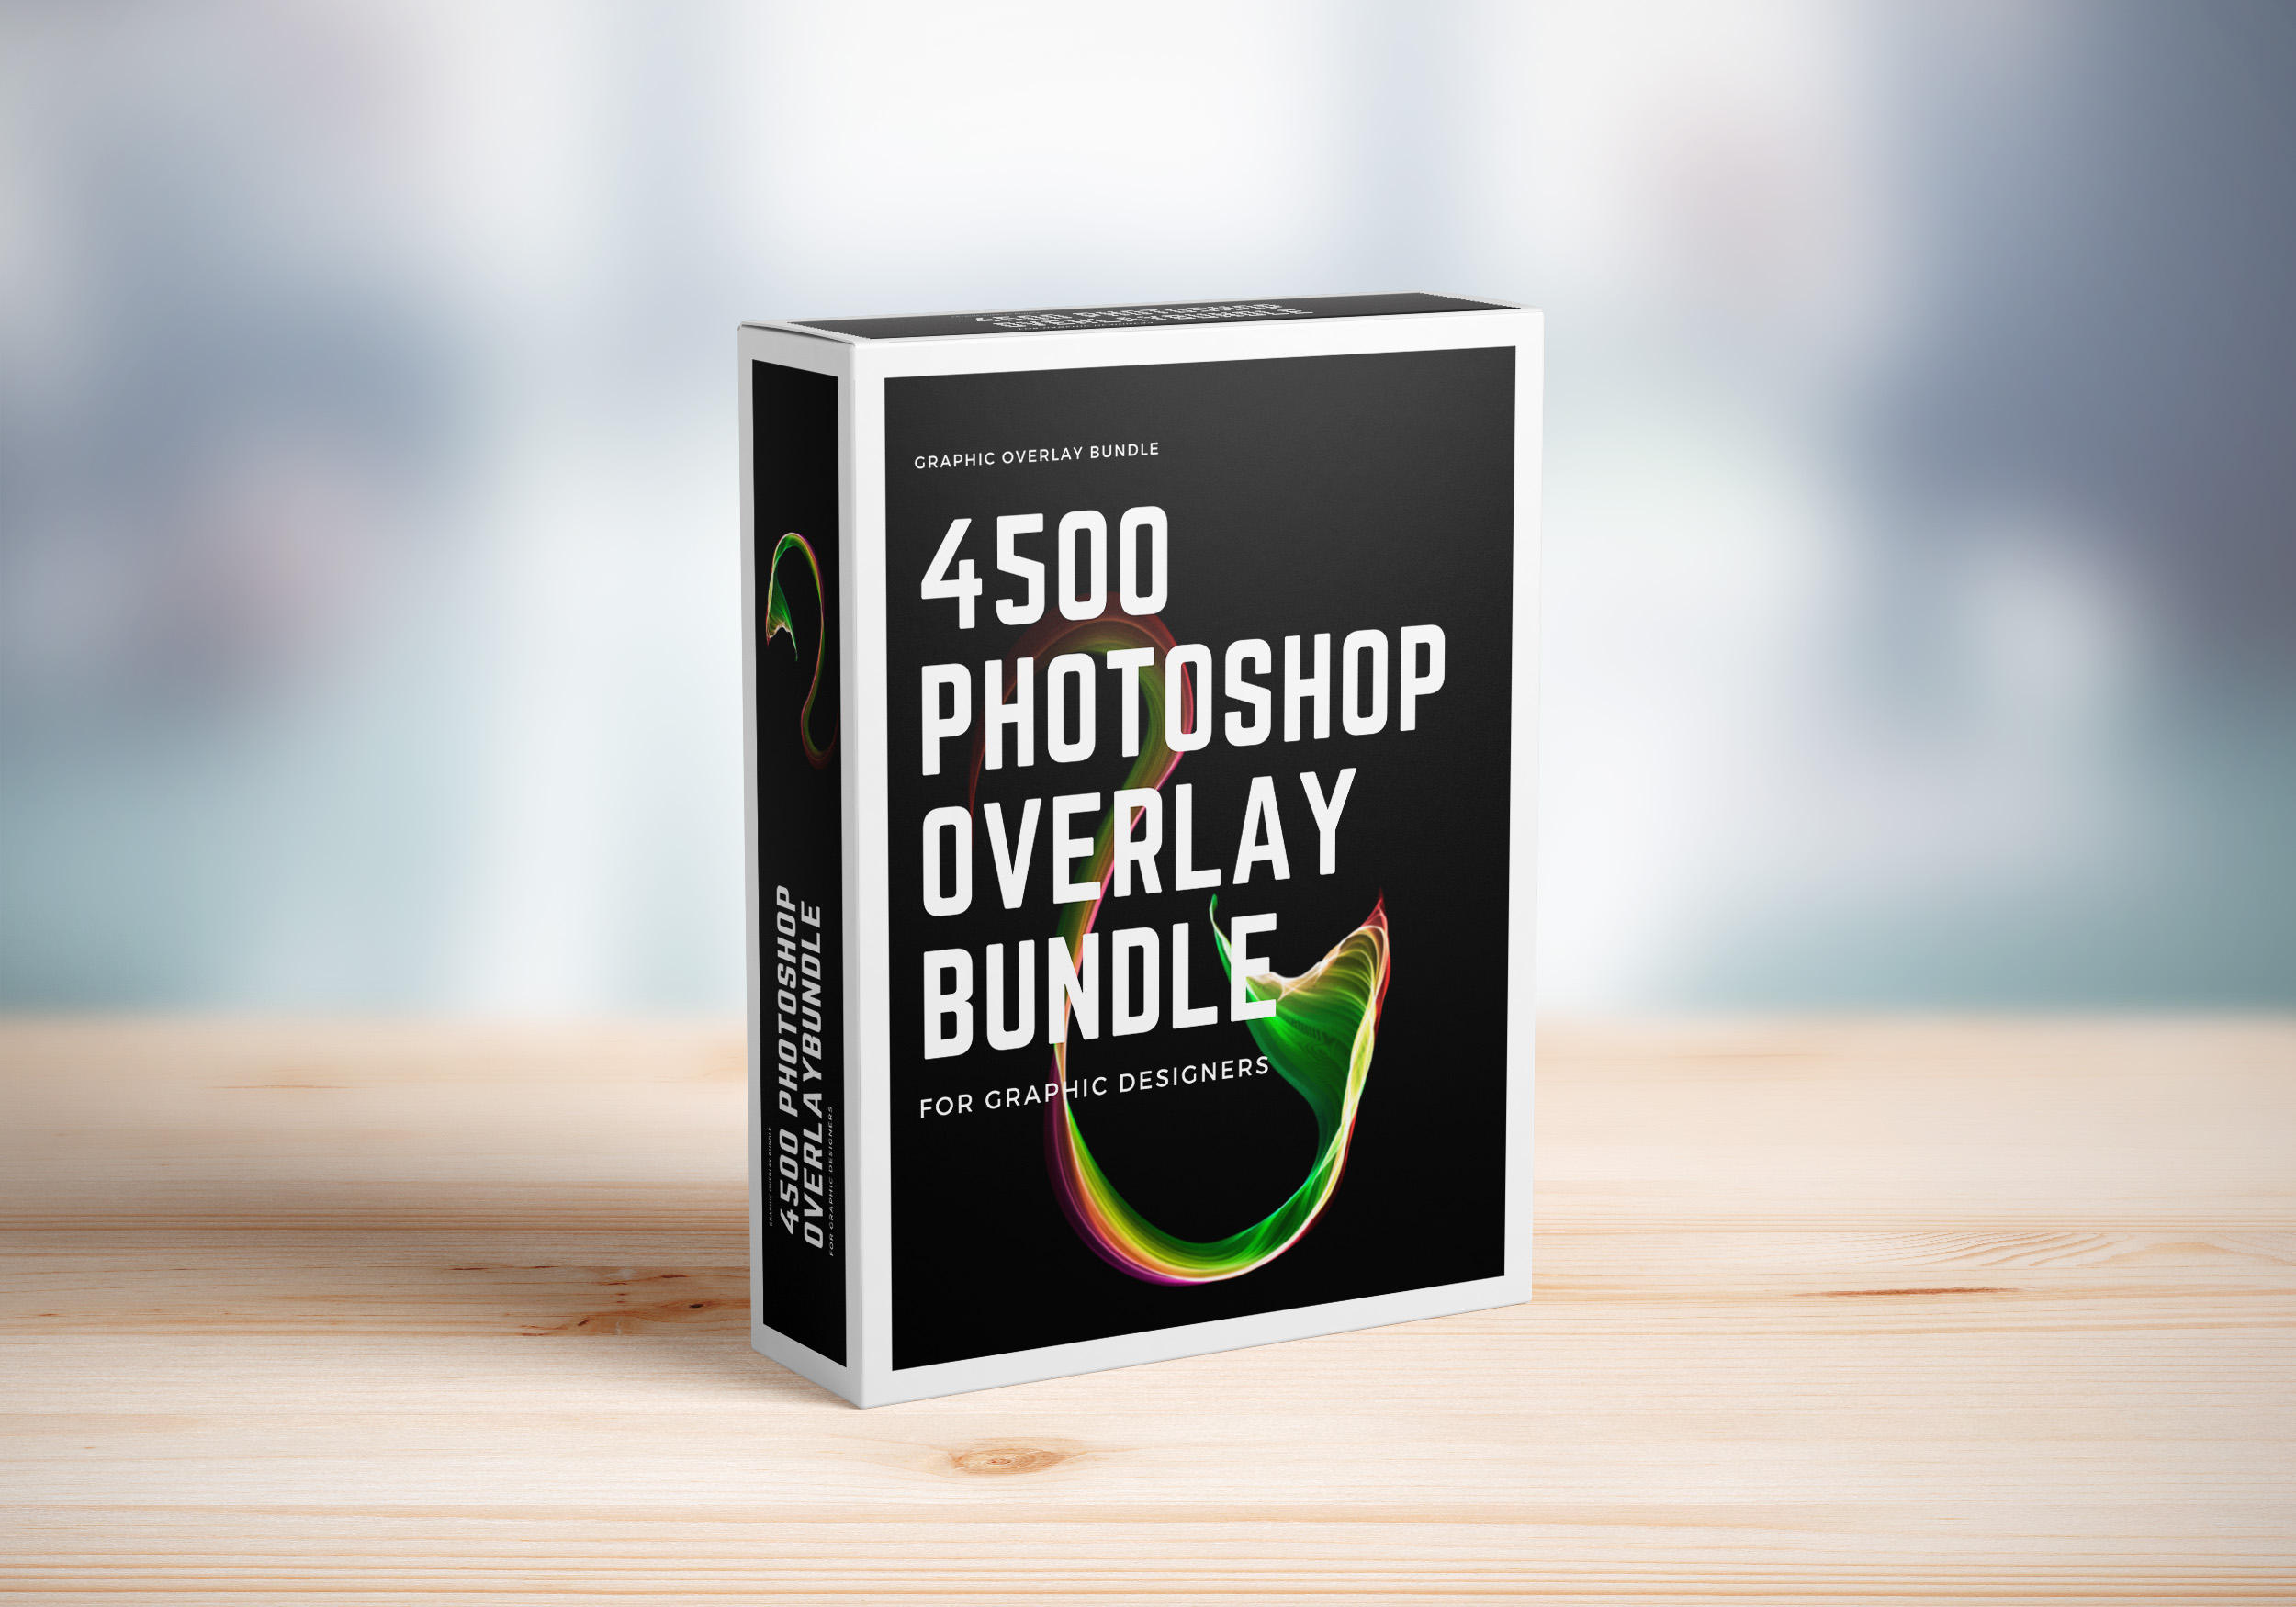 I Will Give 4500 Graphics Overlay Bundle